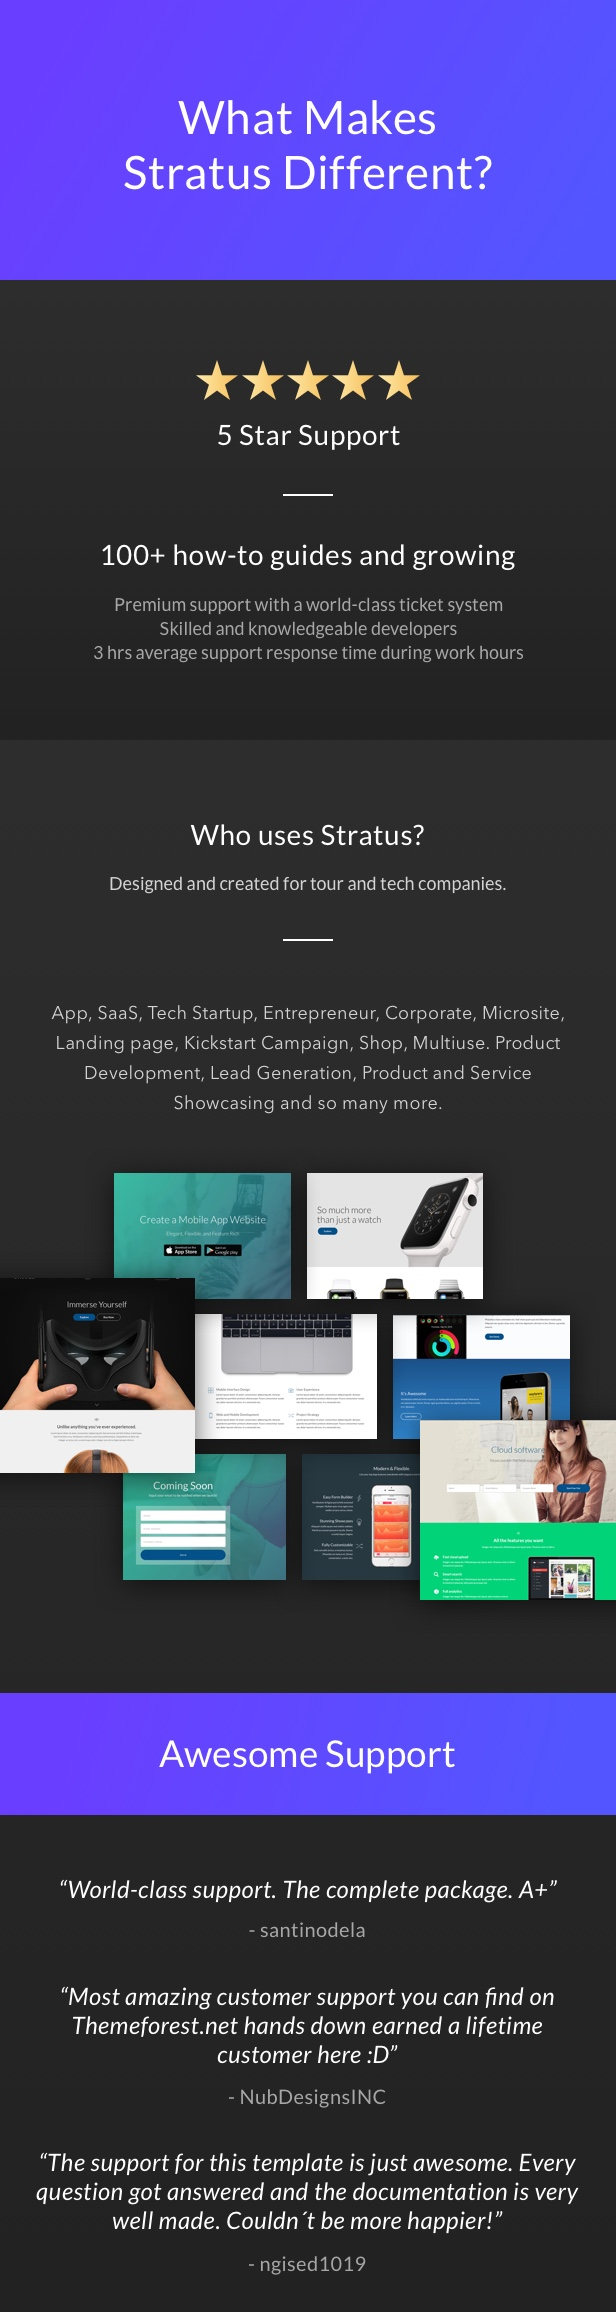 App, SaaS & Software Startup Tech Theme - Stratus - 6